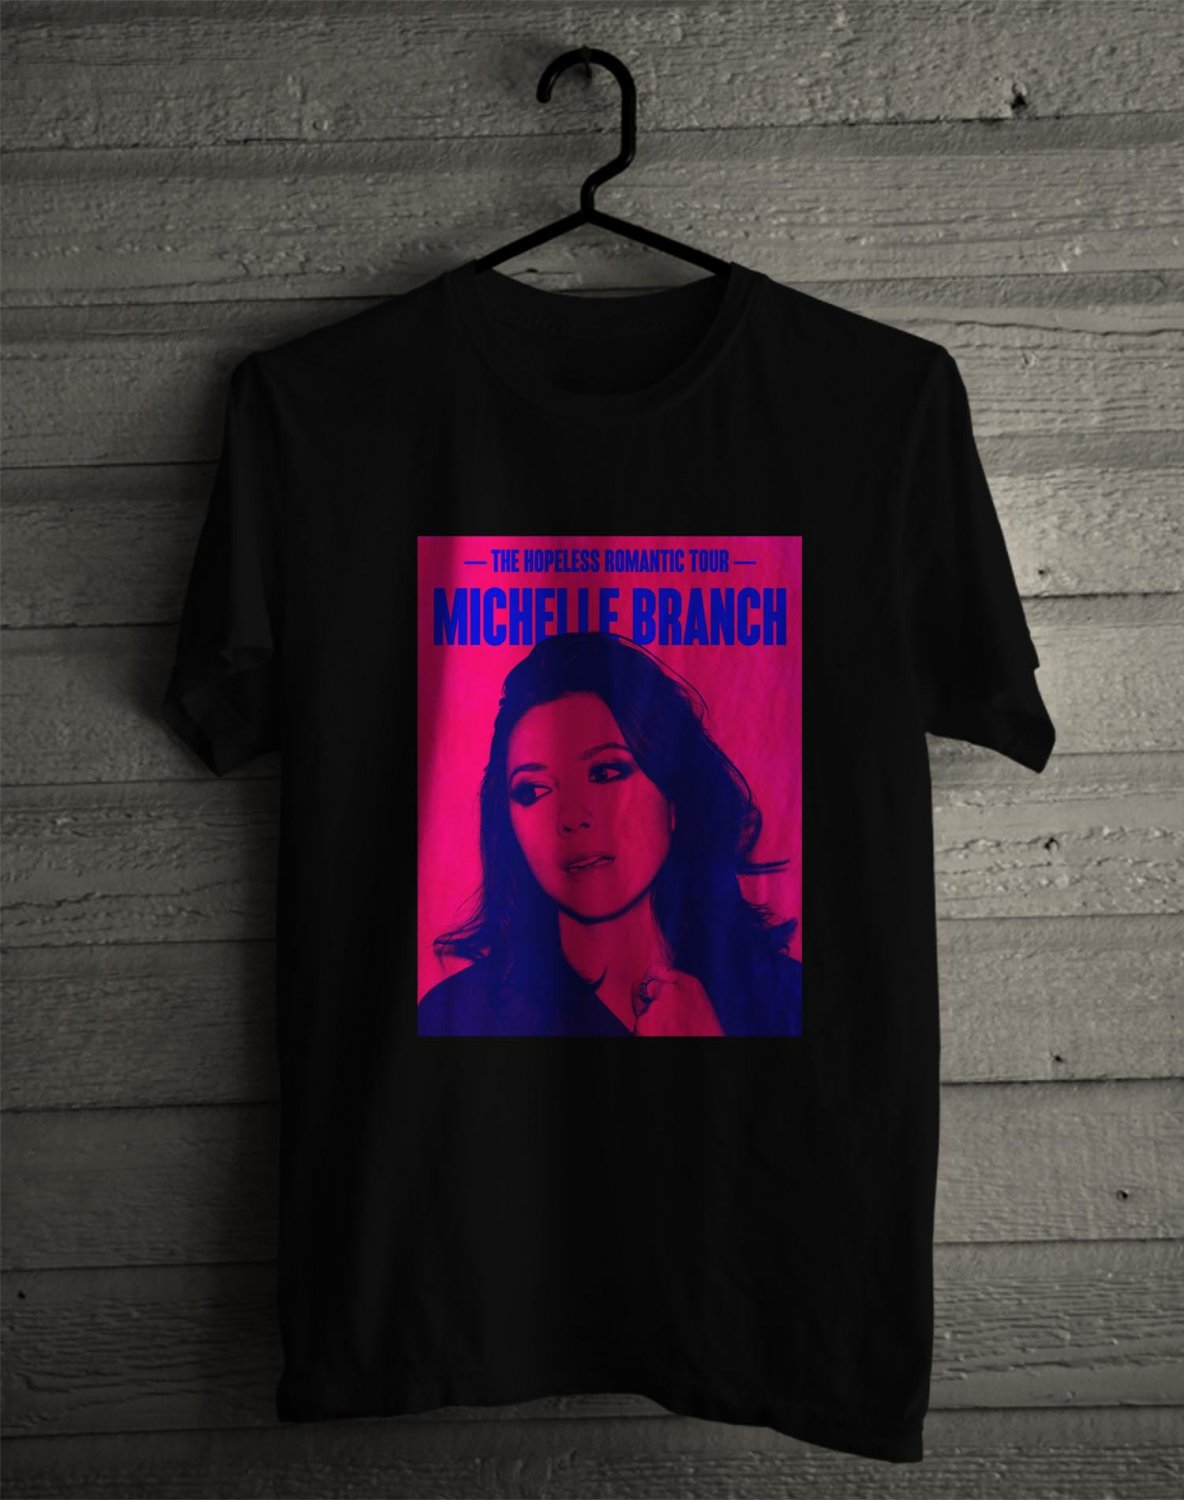 Michelle Branch Hopeless Romantic Tour 2017 BLack Tee's Front Side by Complexart